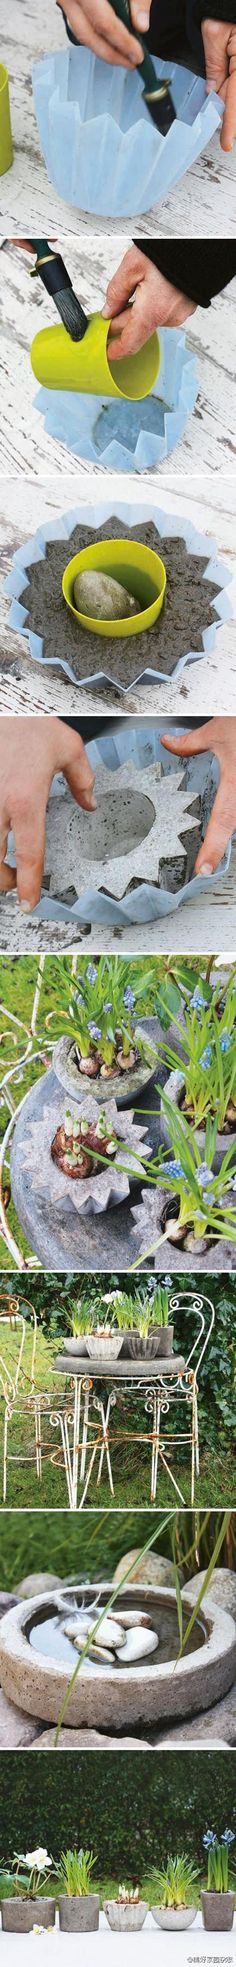 Do it yourself garden decoration - 13 ideas with instructions - DIY garden deco. : Do it yourself garden decoration - 13 ideas with instructions - DIY garden deco. Garden Crafts, Diy Garden Decor, Garden Projects, Garden Art, Home And Garden, Diy Projects, Diy Decoration, Spring Garden, Diy Crafts